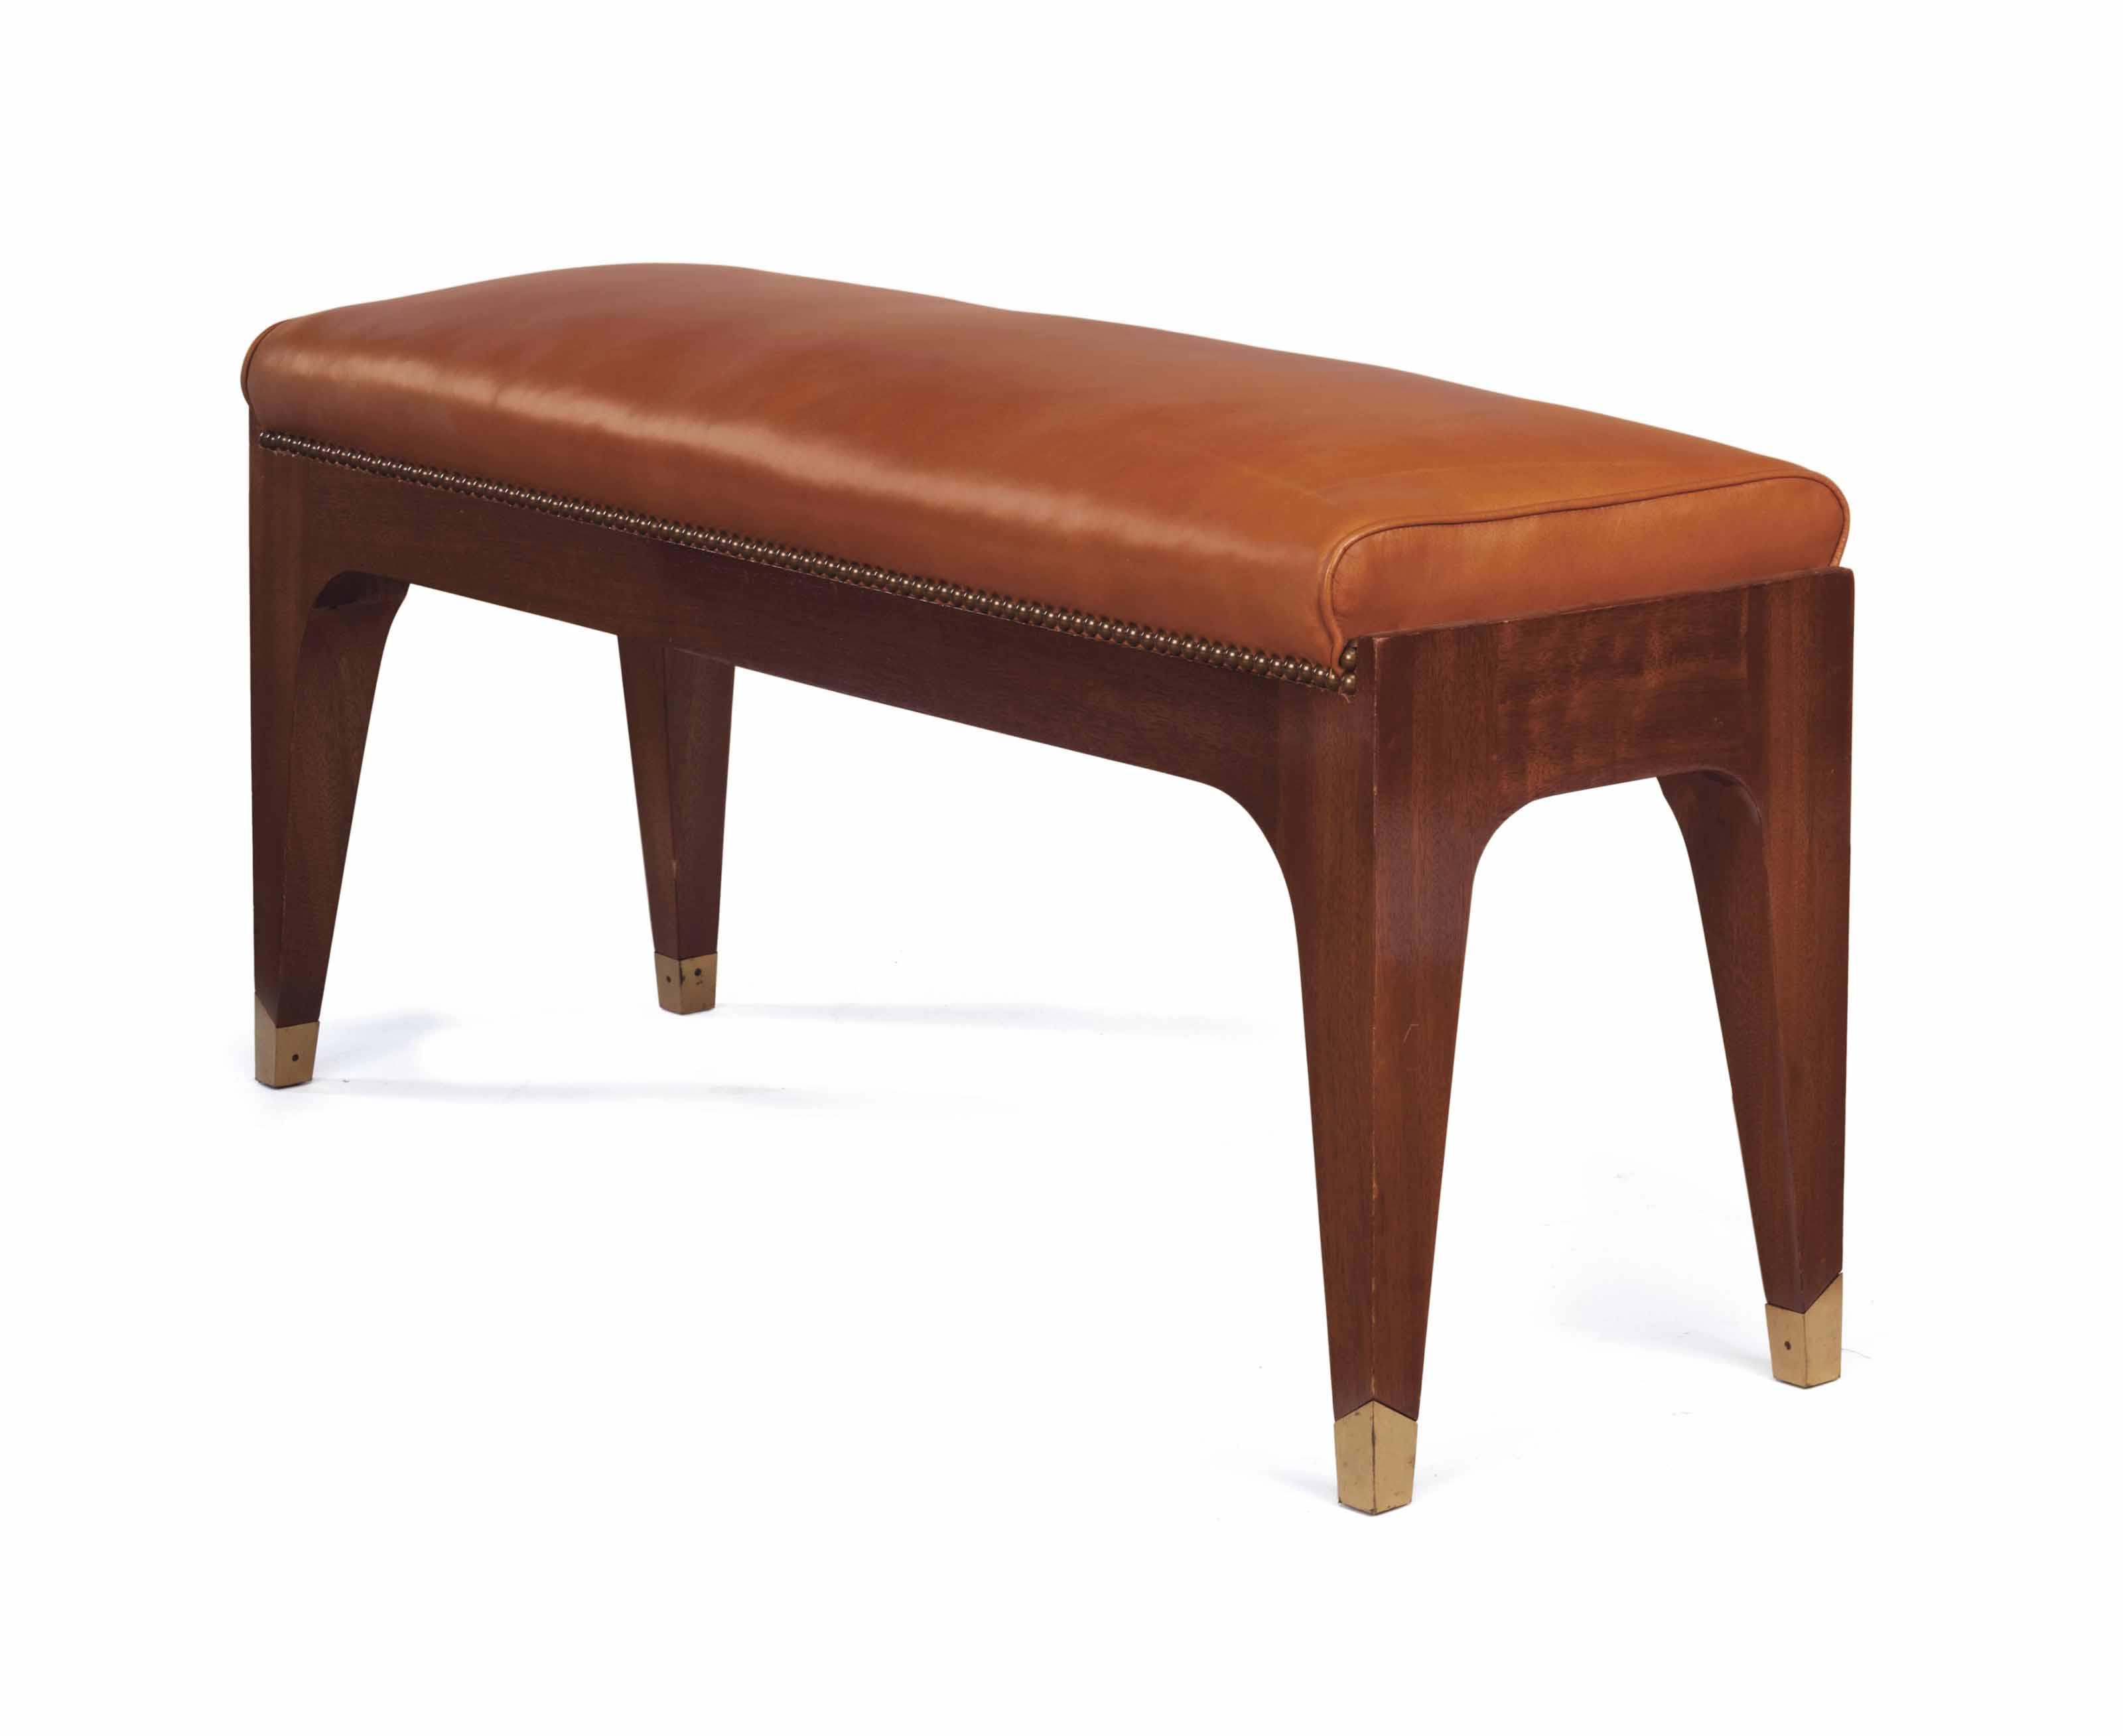 A French Brass Mounted Mahogany And Leather Upholstered Bench